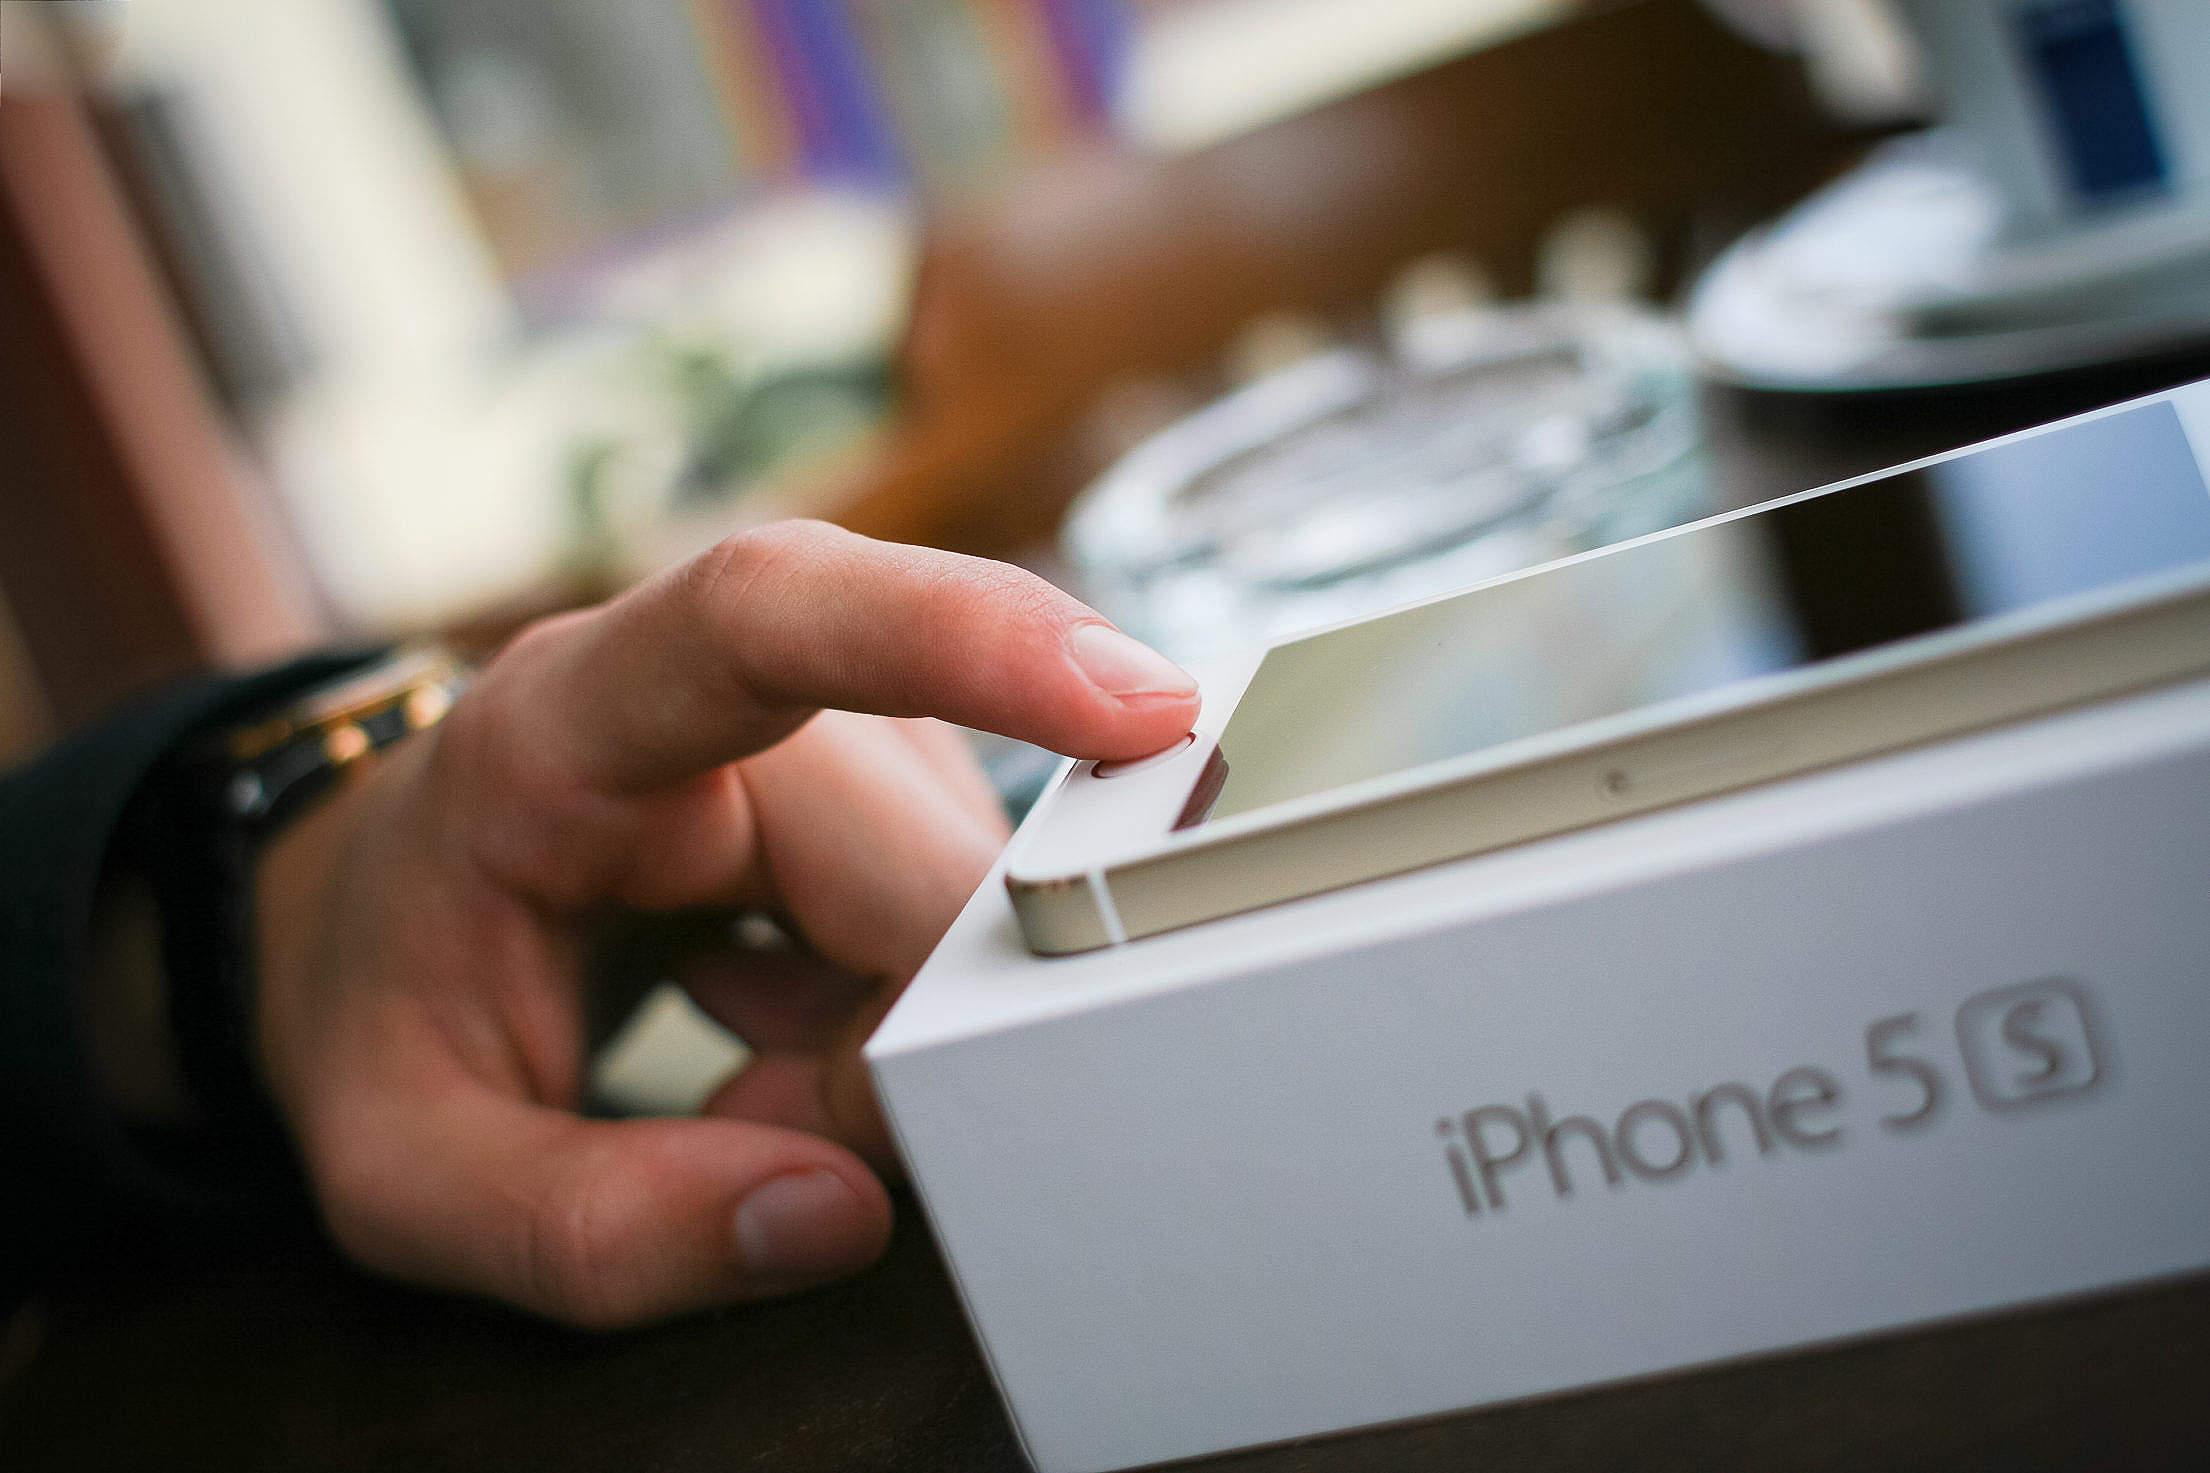 iPhone 5S Touch ID Free Stock Photo